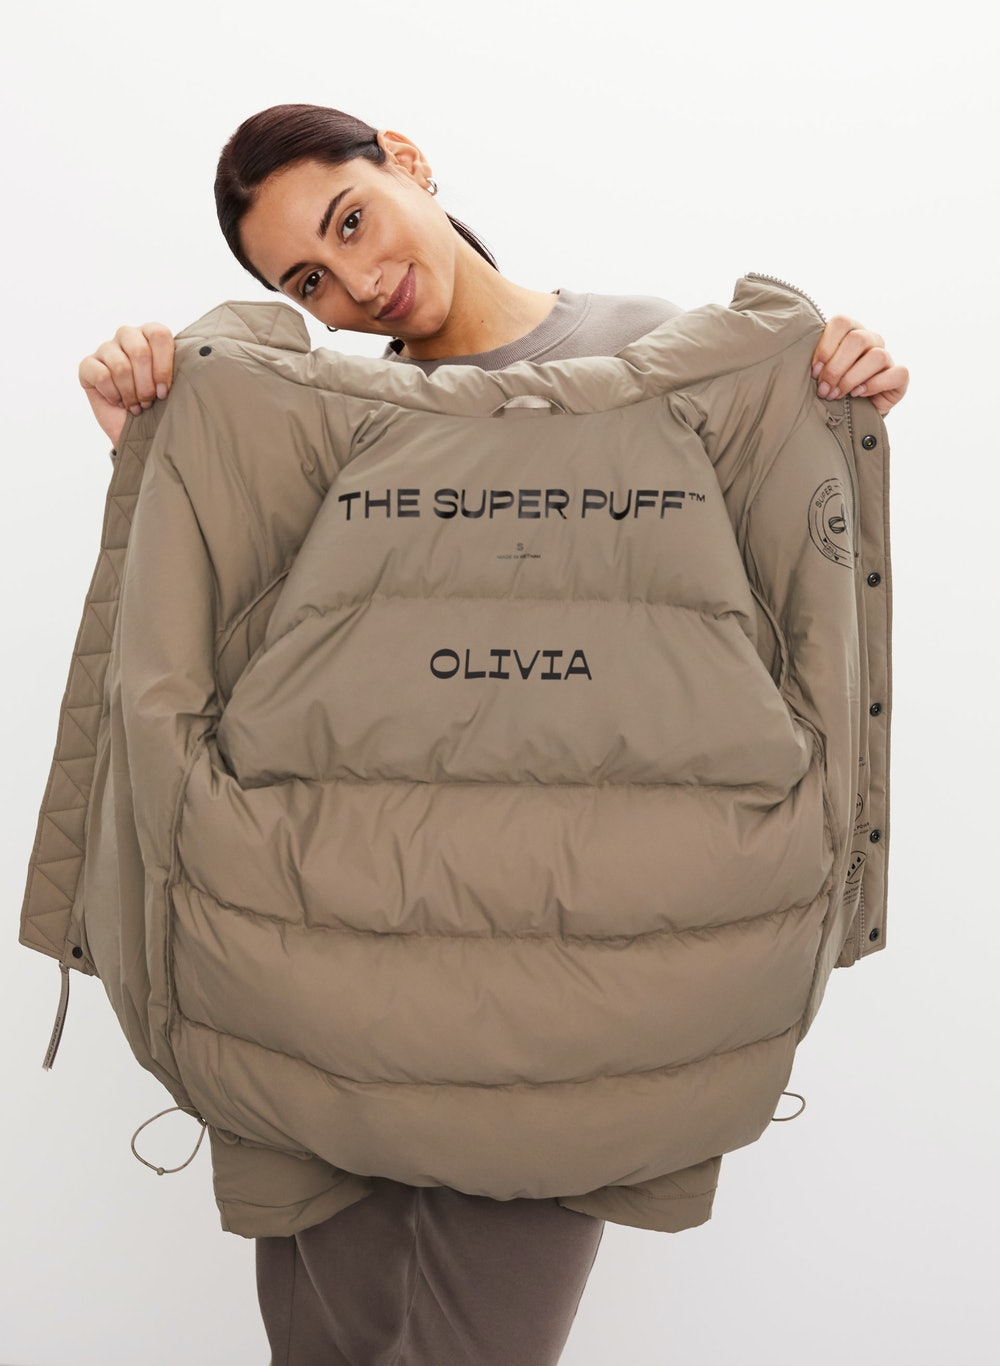 The Super Puff™ Personalized